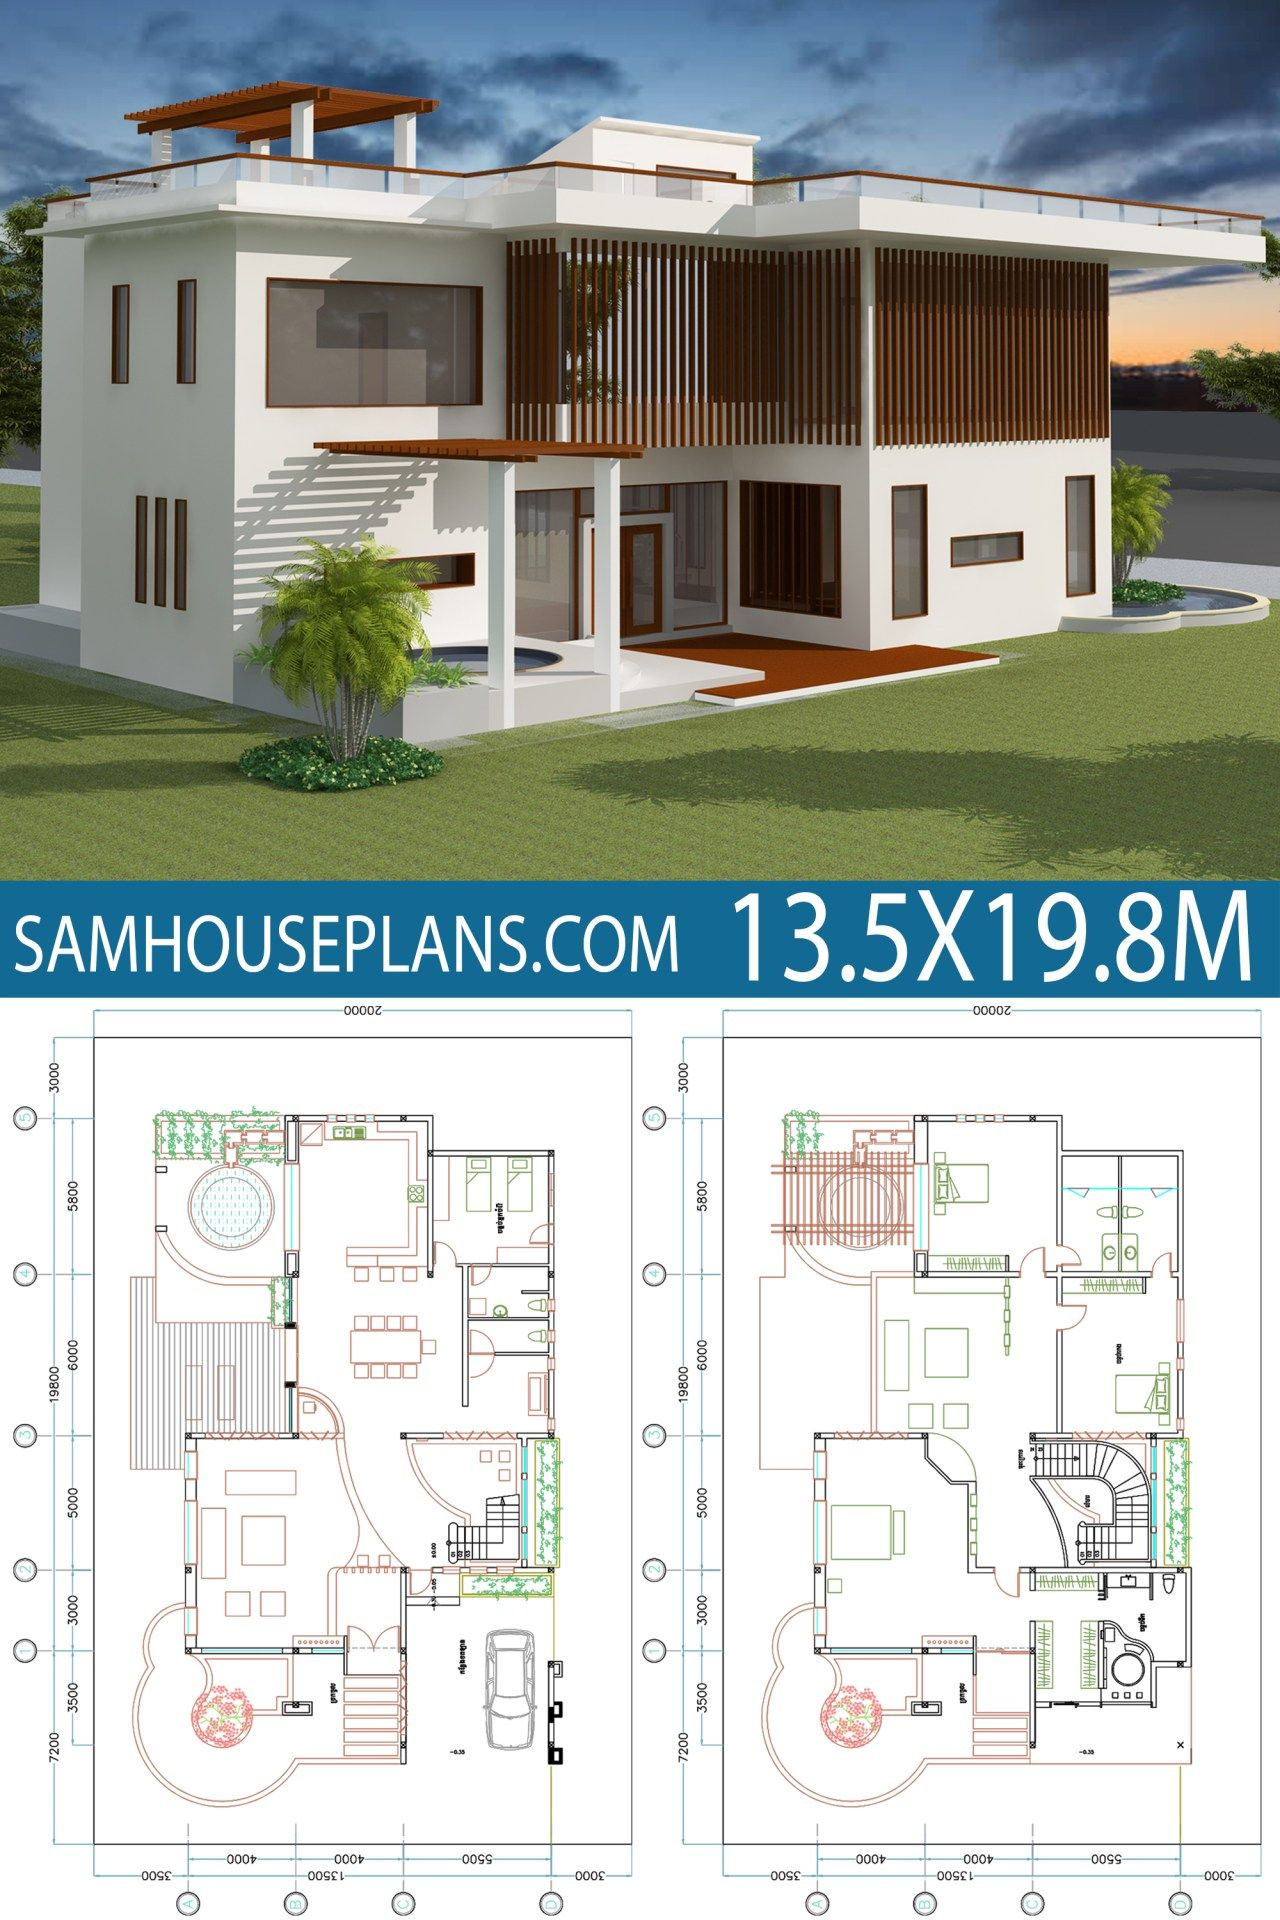 House Plan 13 5x19 8m With 4 Bedrooms Sam House Plans Two Story House Design Double Storey House Plans Duplex House Plans